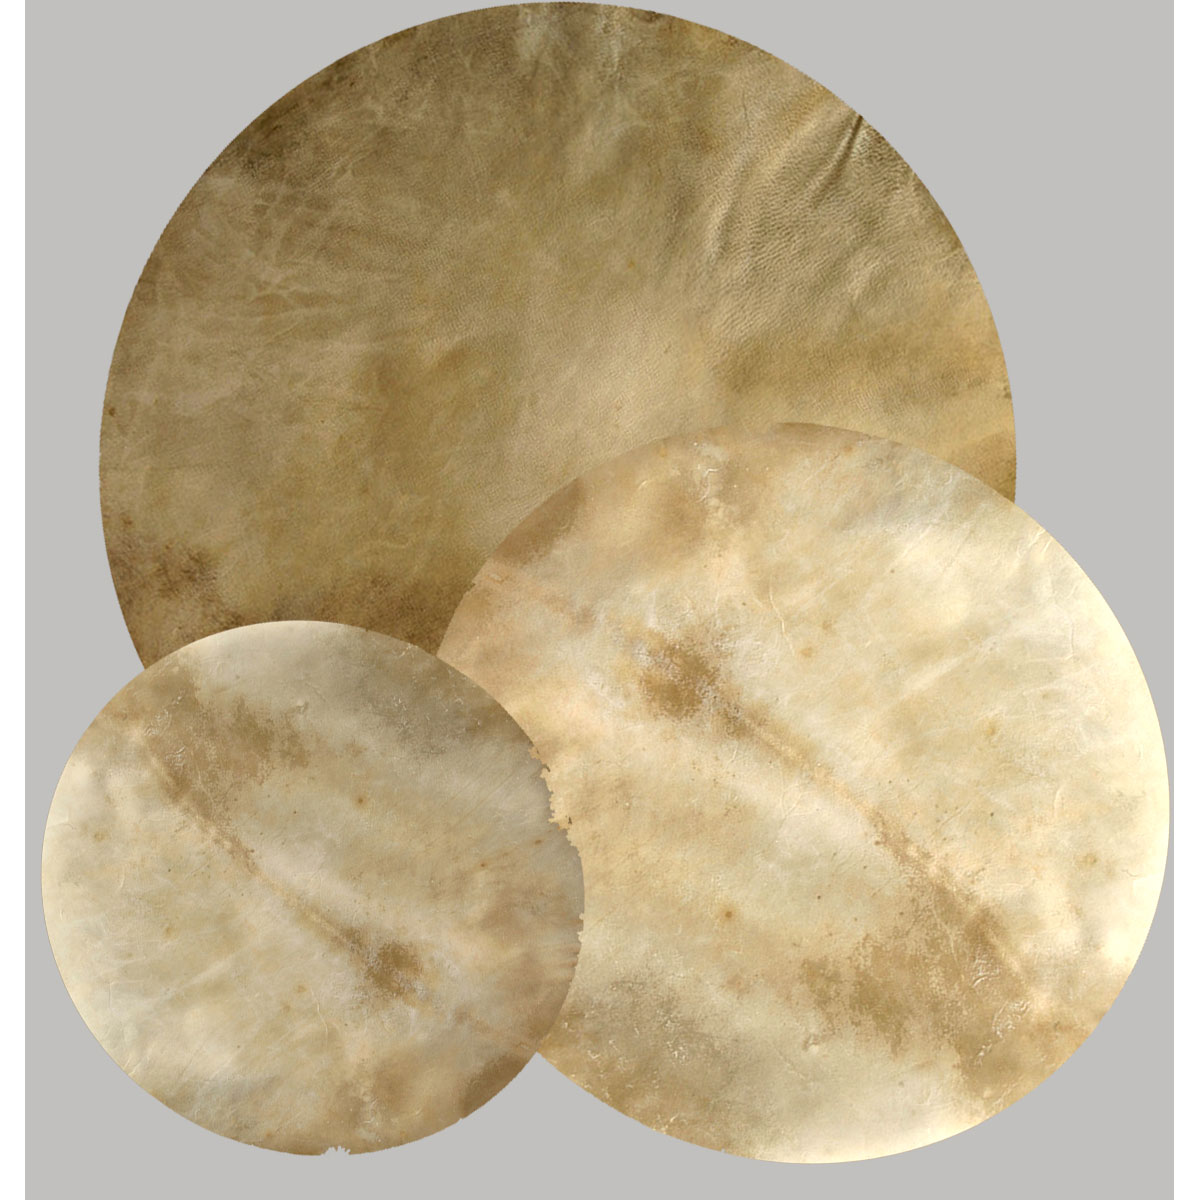 Goat Skin Drum Heads